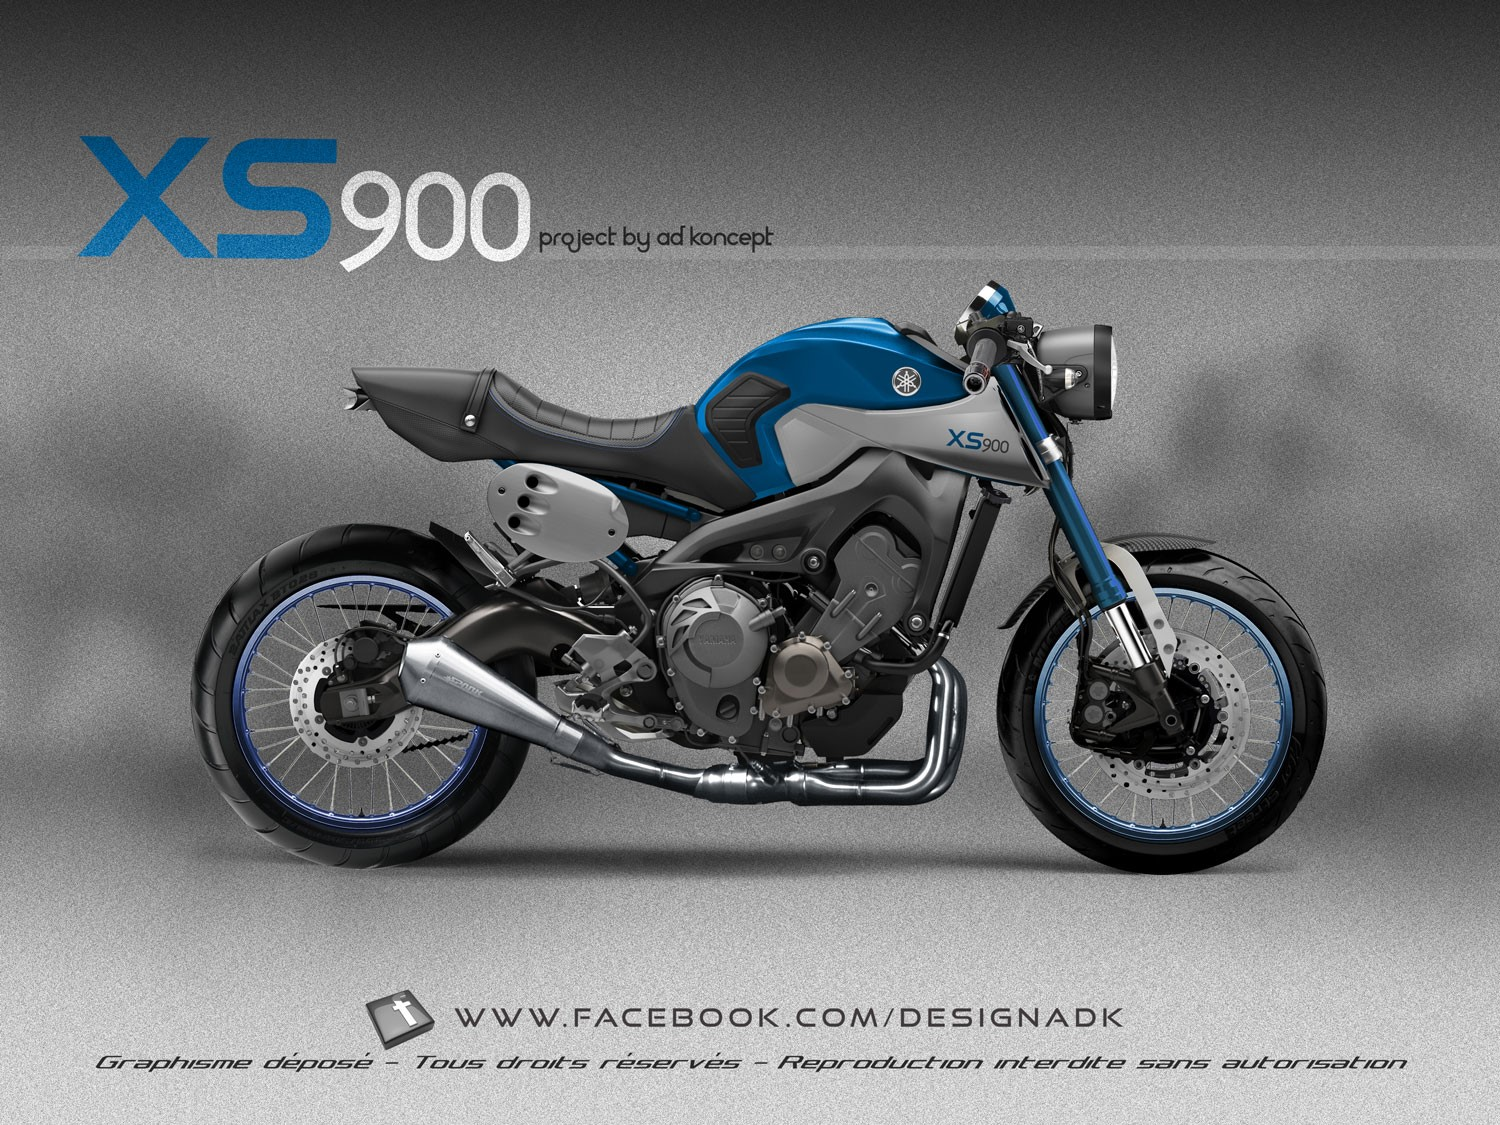 Racing Caf 232 Design Corner Yamaha Xs 900 By Ad Koncept